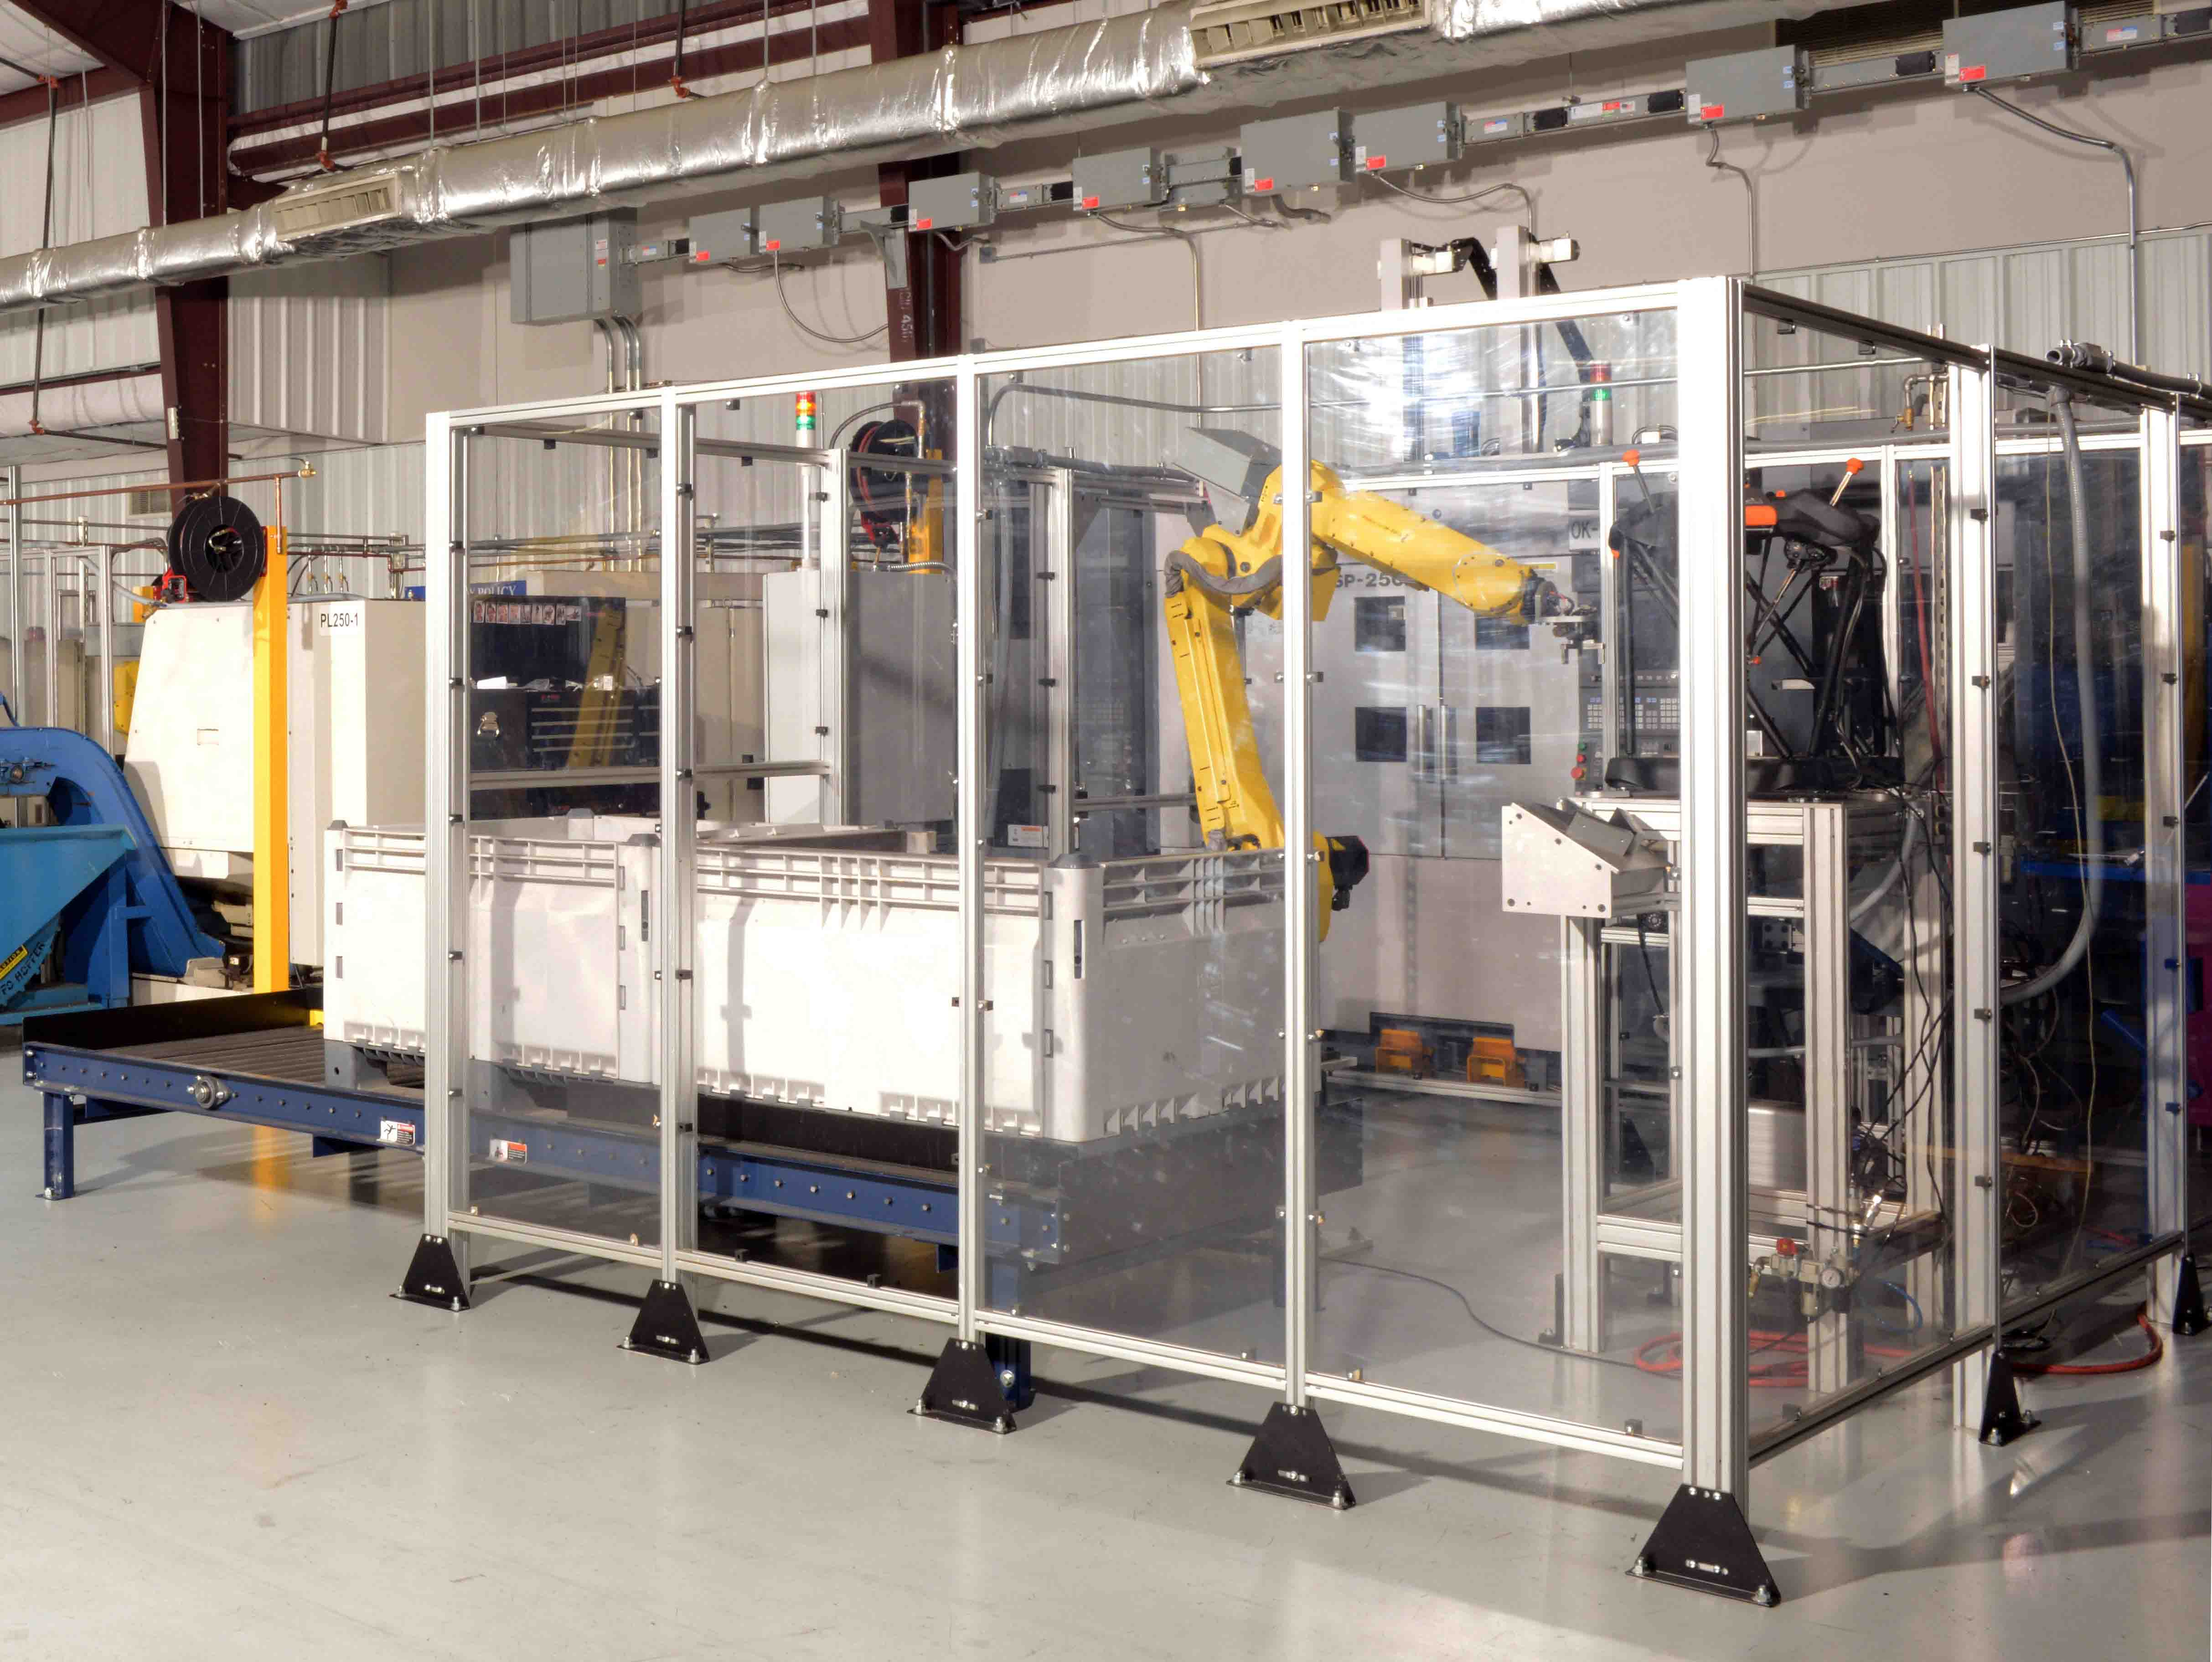 Renishaw Gaging System Improves Work Cell Productivity